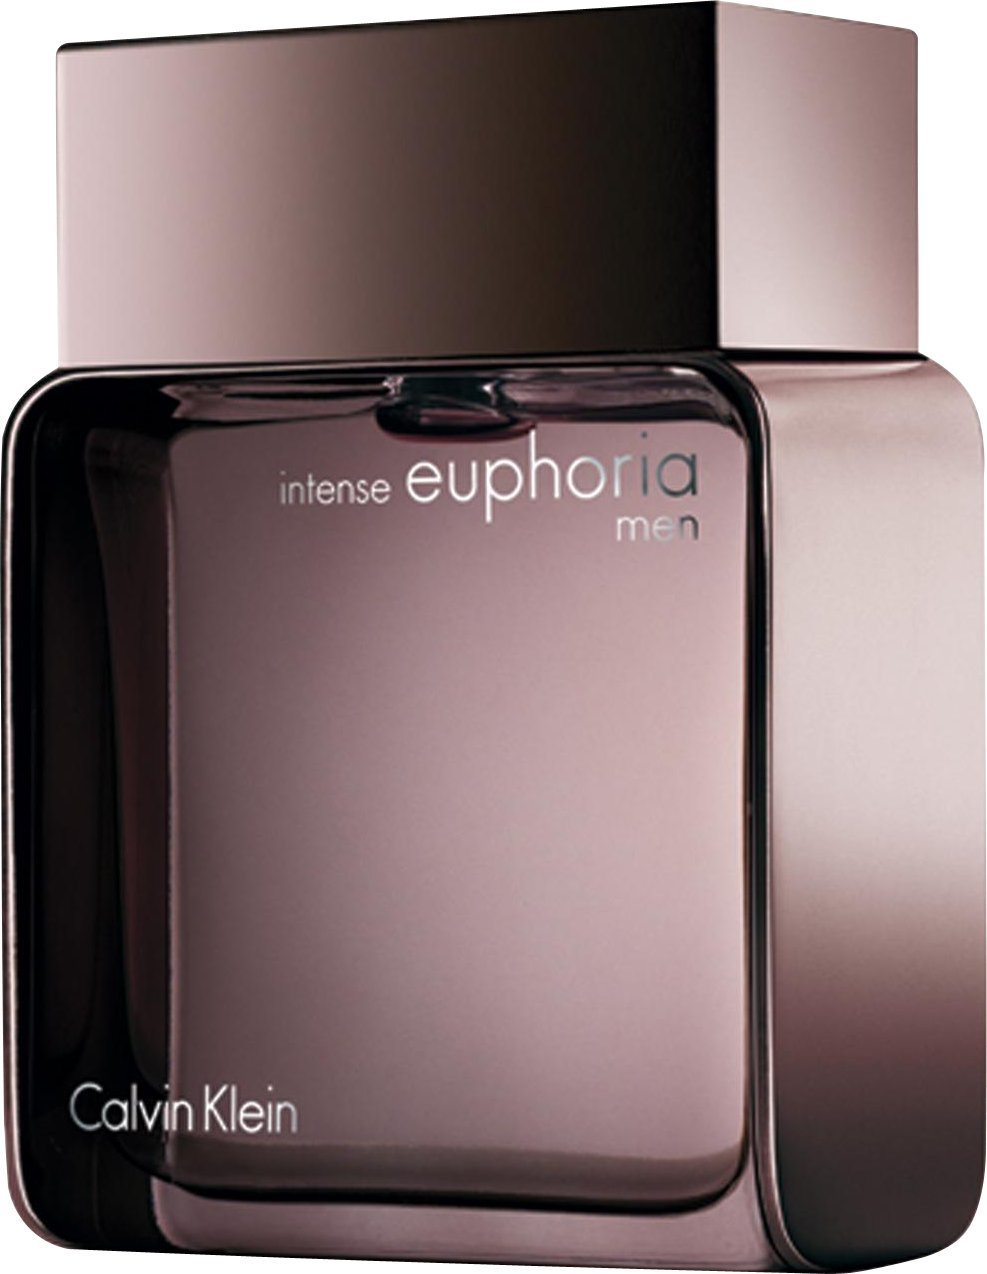 Calvin Klein Intense Euphoria Men Eau de Toilette - 50 ml